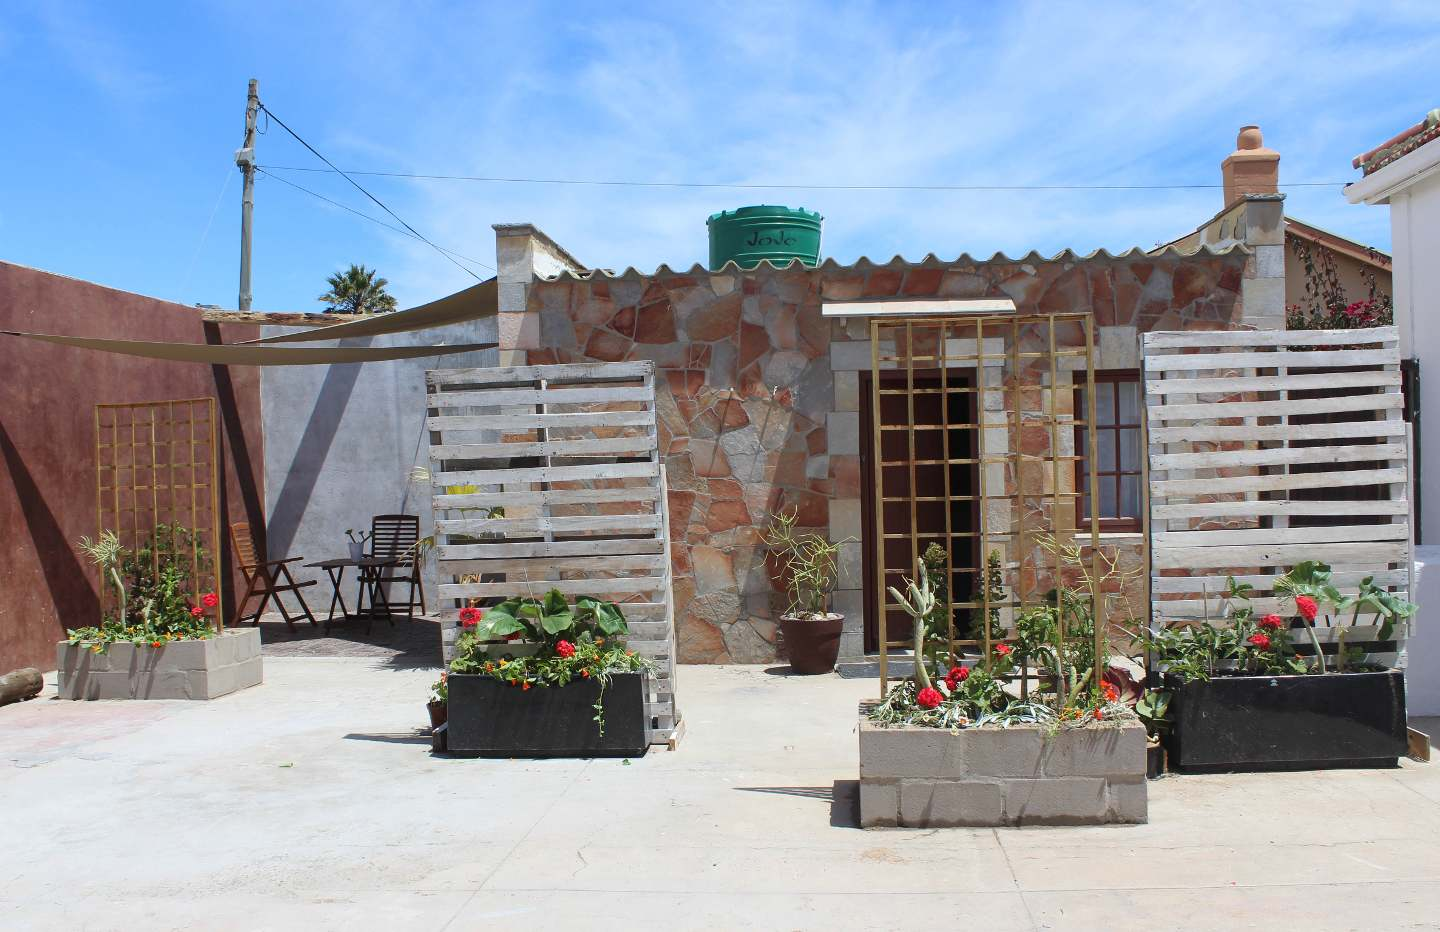 Port Nolloth South Africa  city pictures gallery : Yield House on Beach Road, Port Nolloth, South Africa